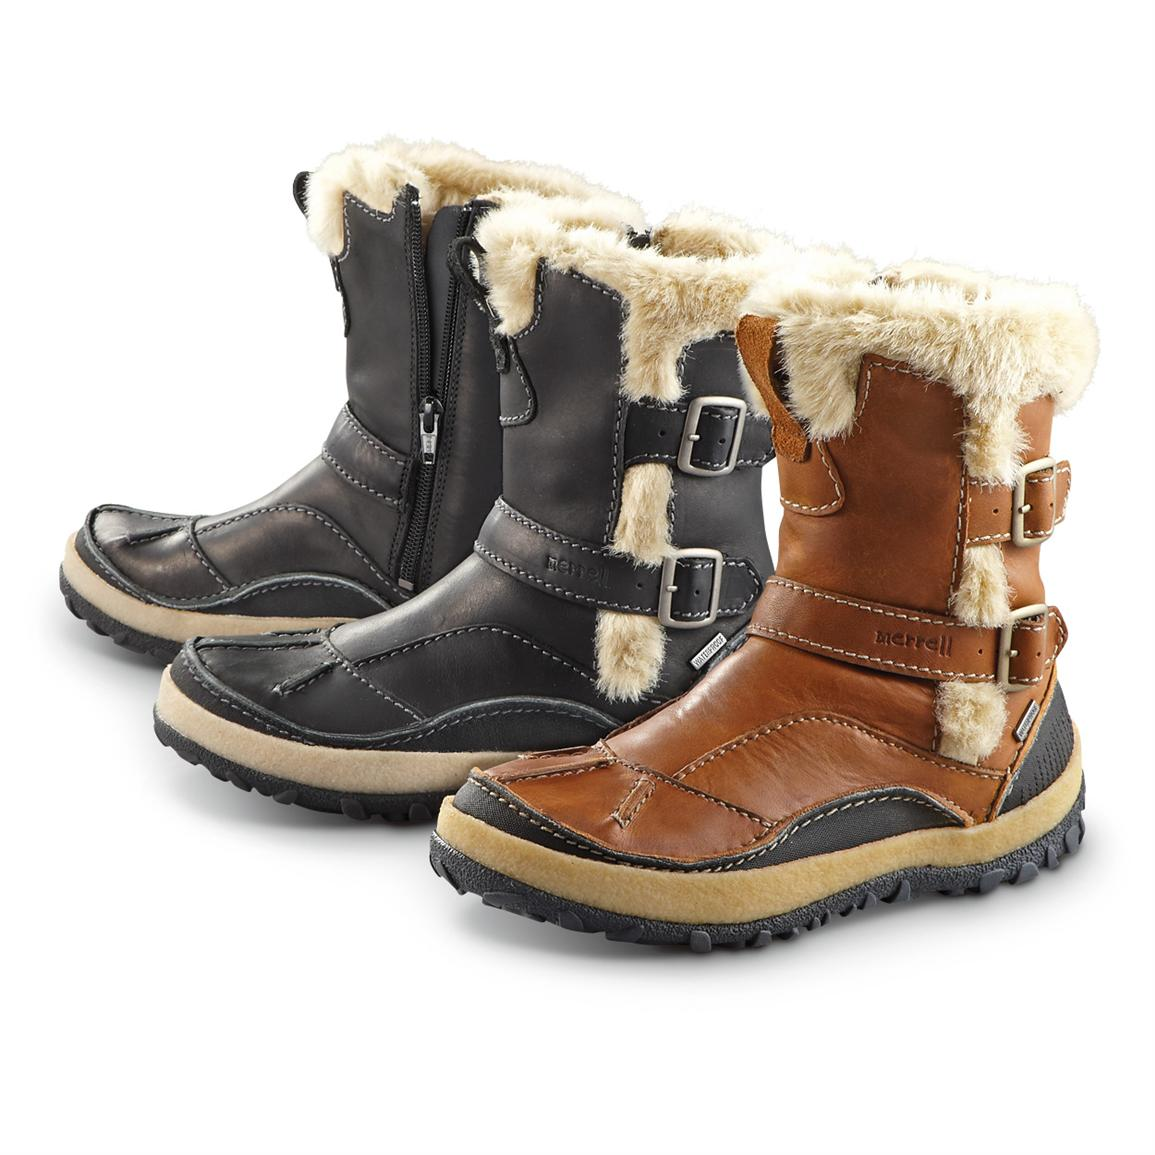 Cute Womens Snow Boots I1Ym2yc1